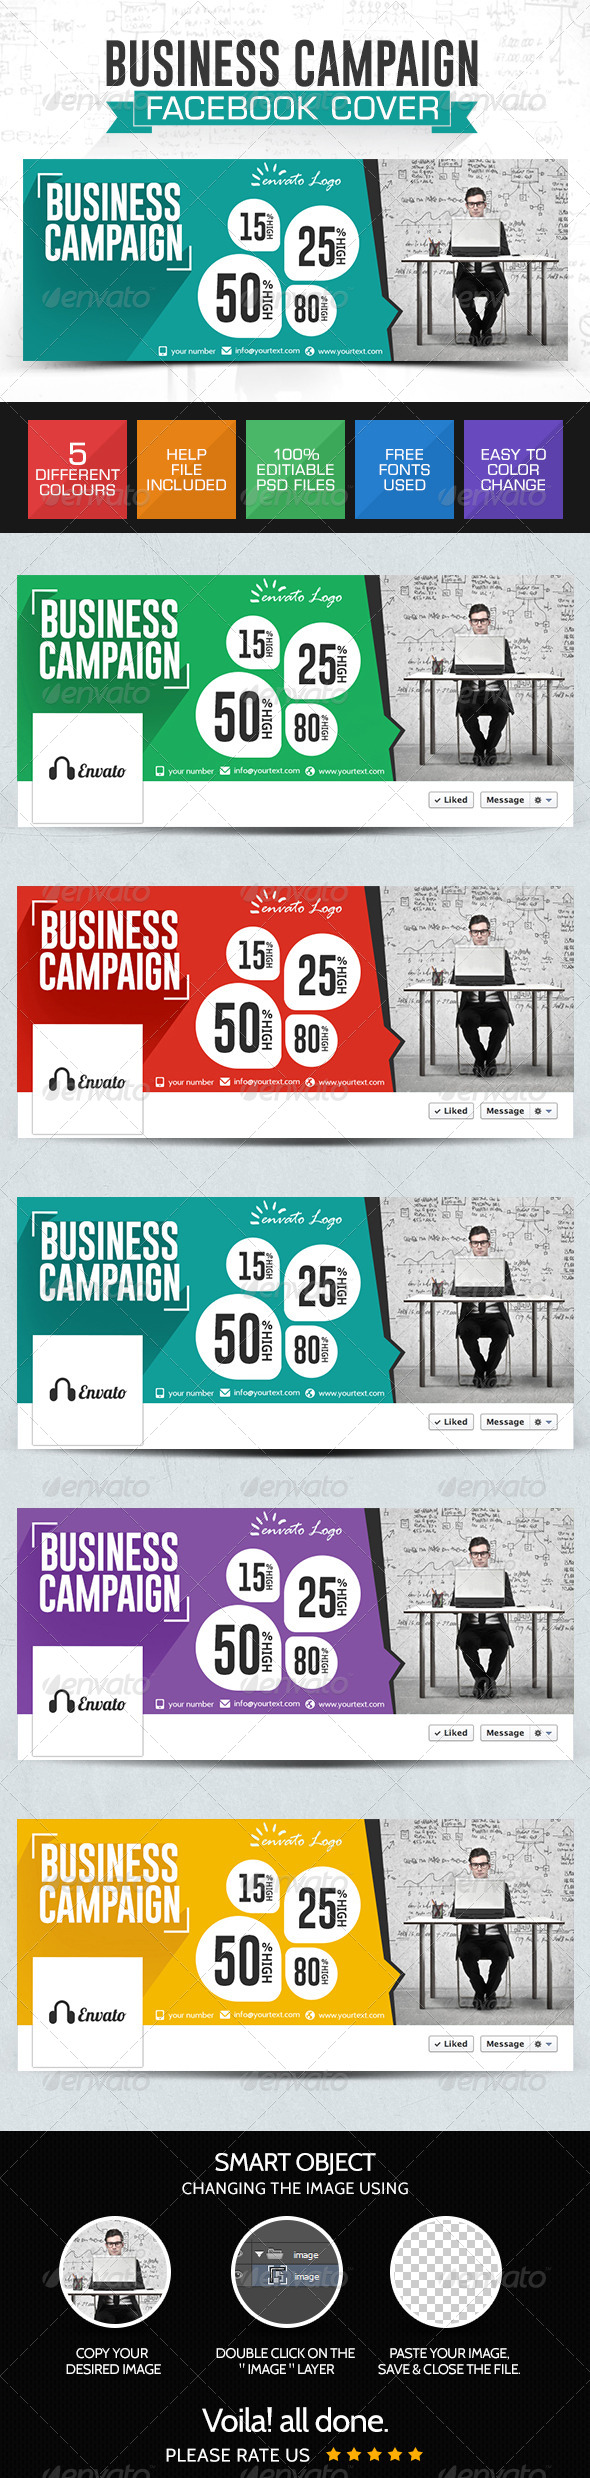 Business Campaign Facebook Cover - Facebook Timeline Covers Social Media